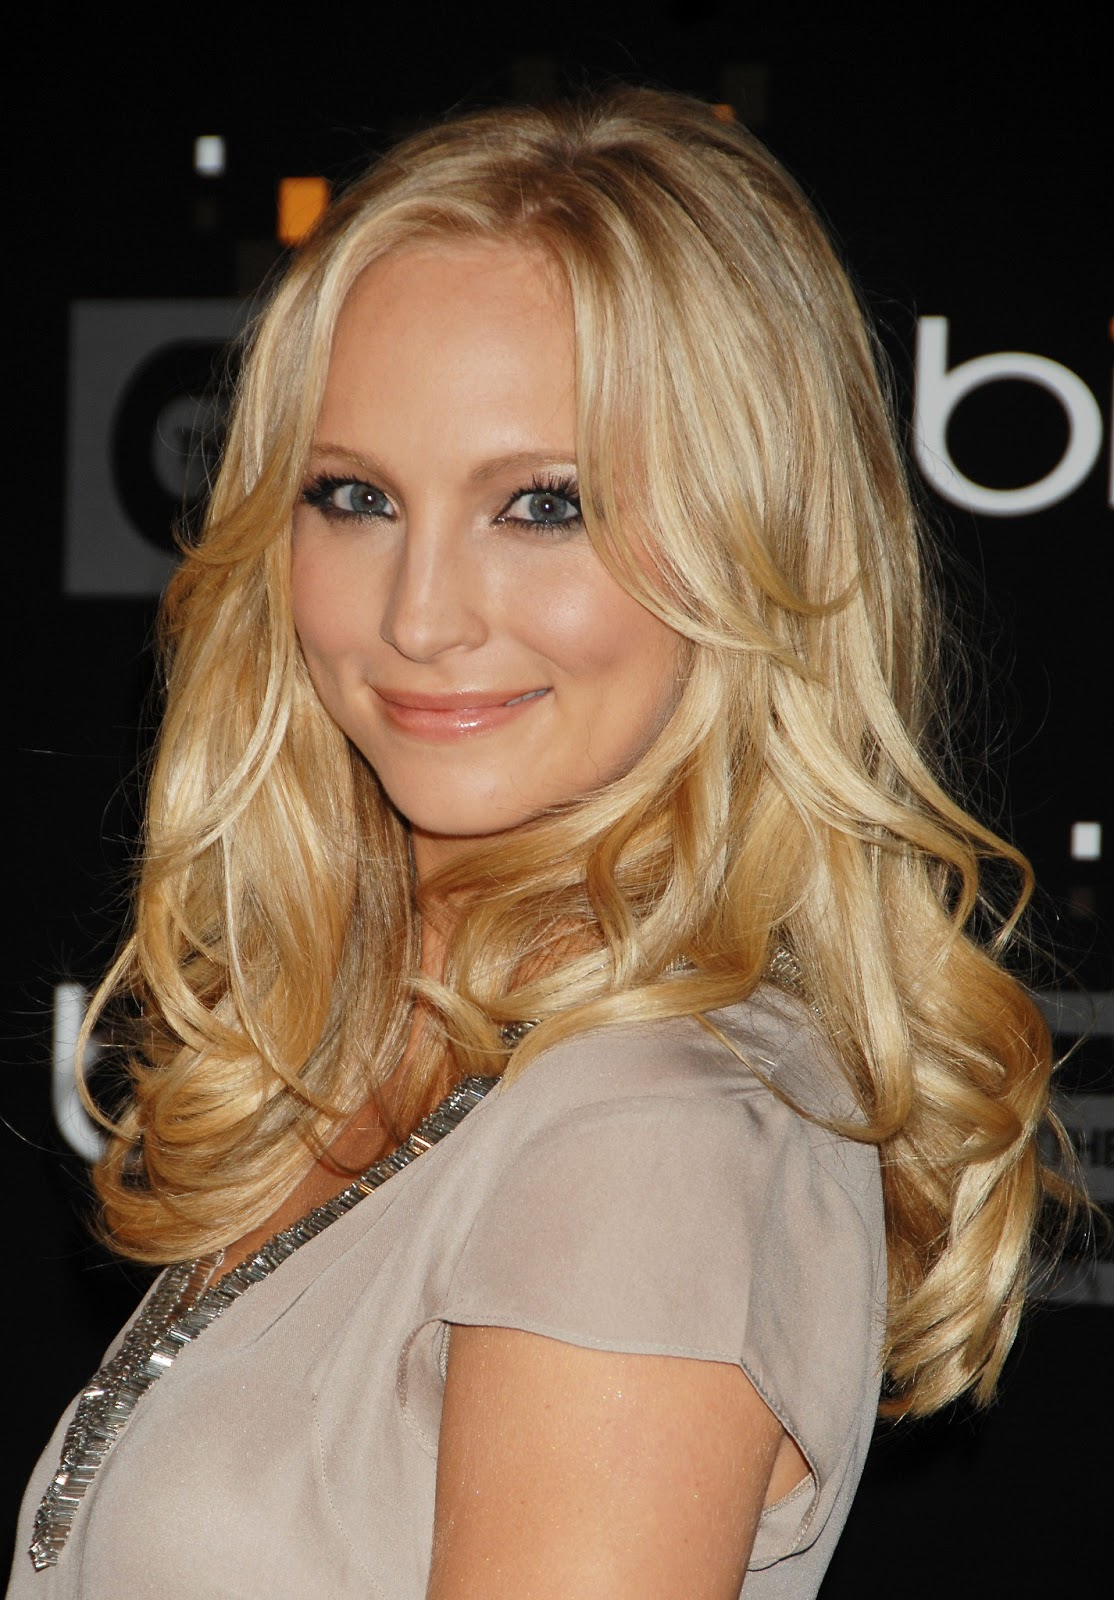 Candice Accola Hd Wallpapers  Wall Pc-6091